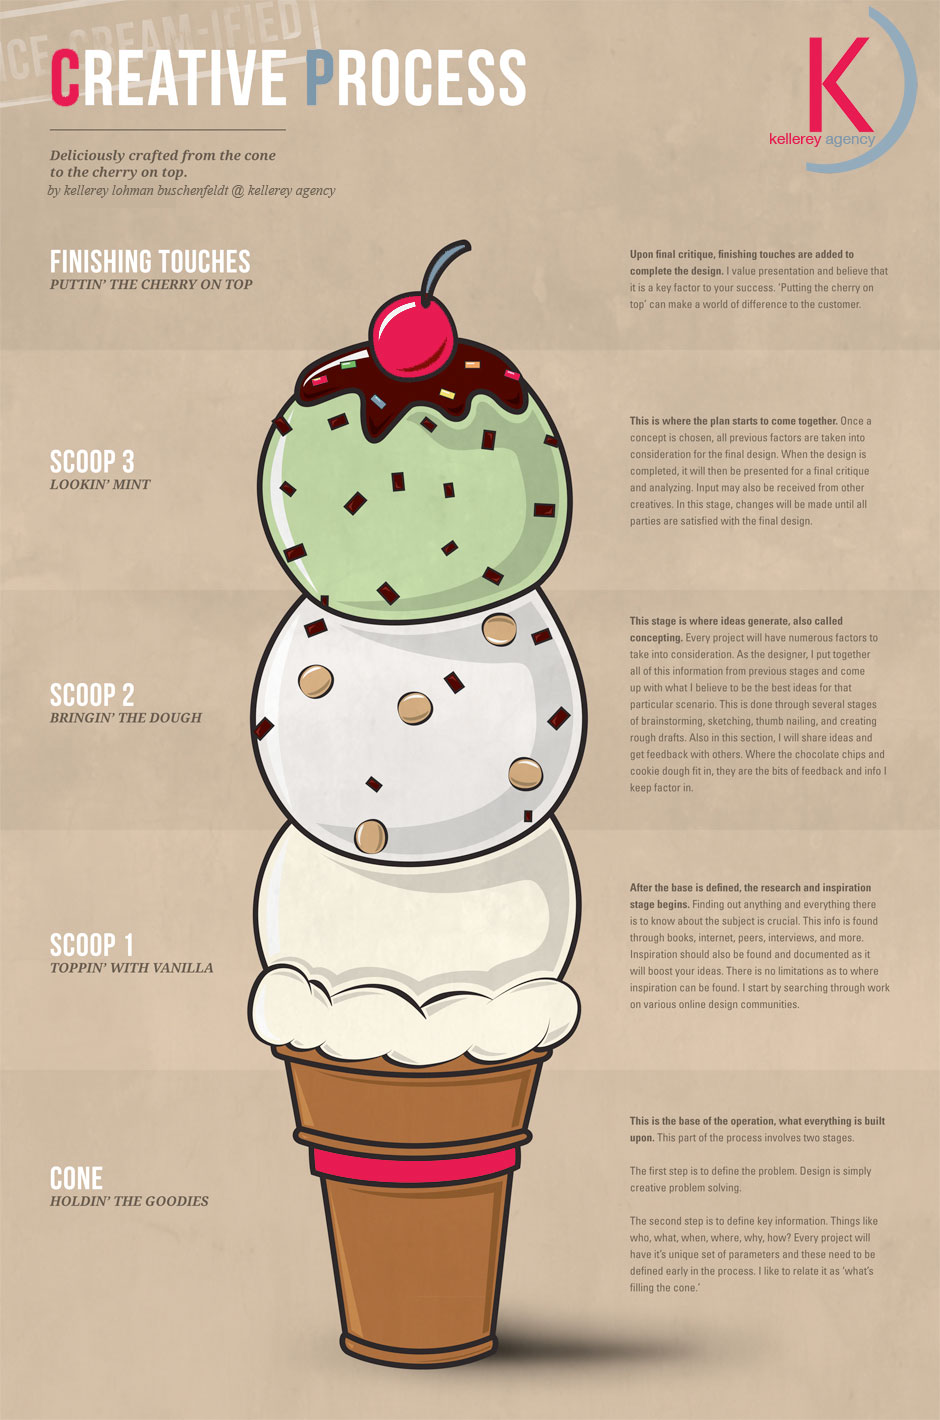 http://www.kellerey.com/2013/08/08/infographic-our-creative-process-defined-via-ice-cream/